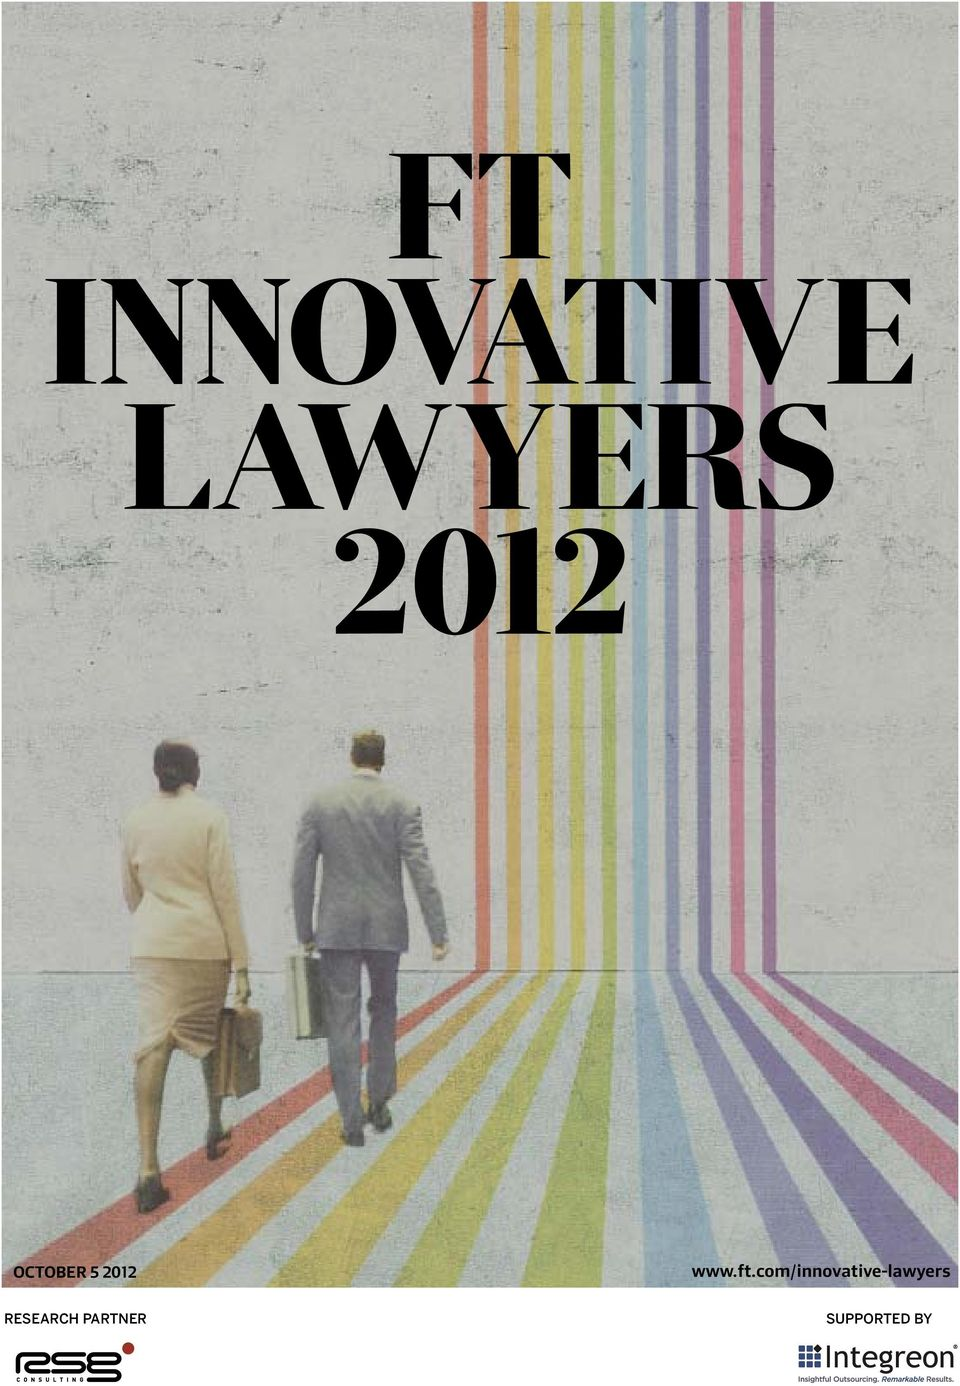 com/innovativelawyers